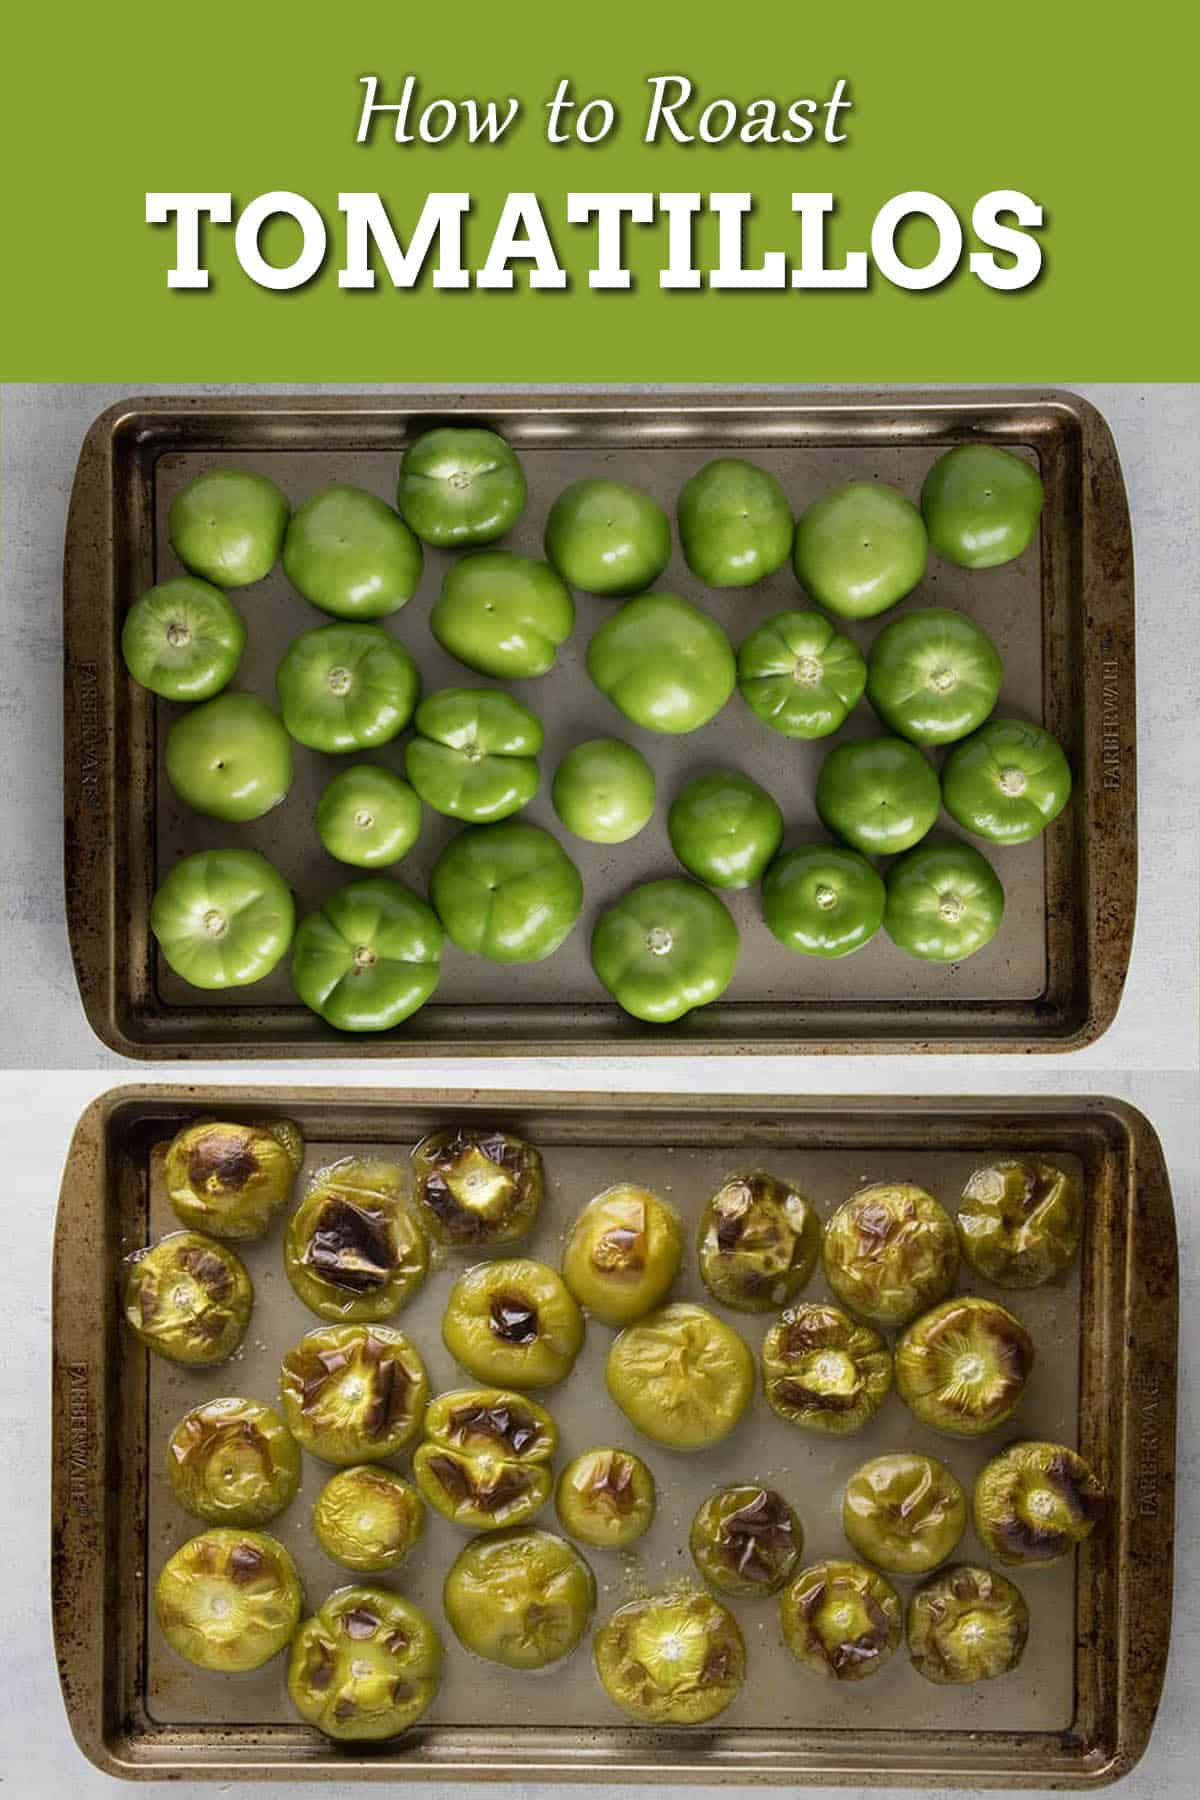 How to Roast Tomatillos